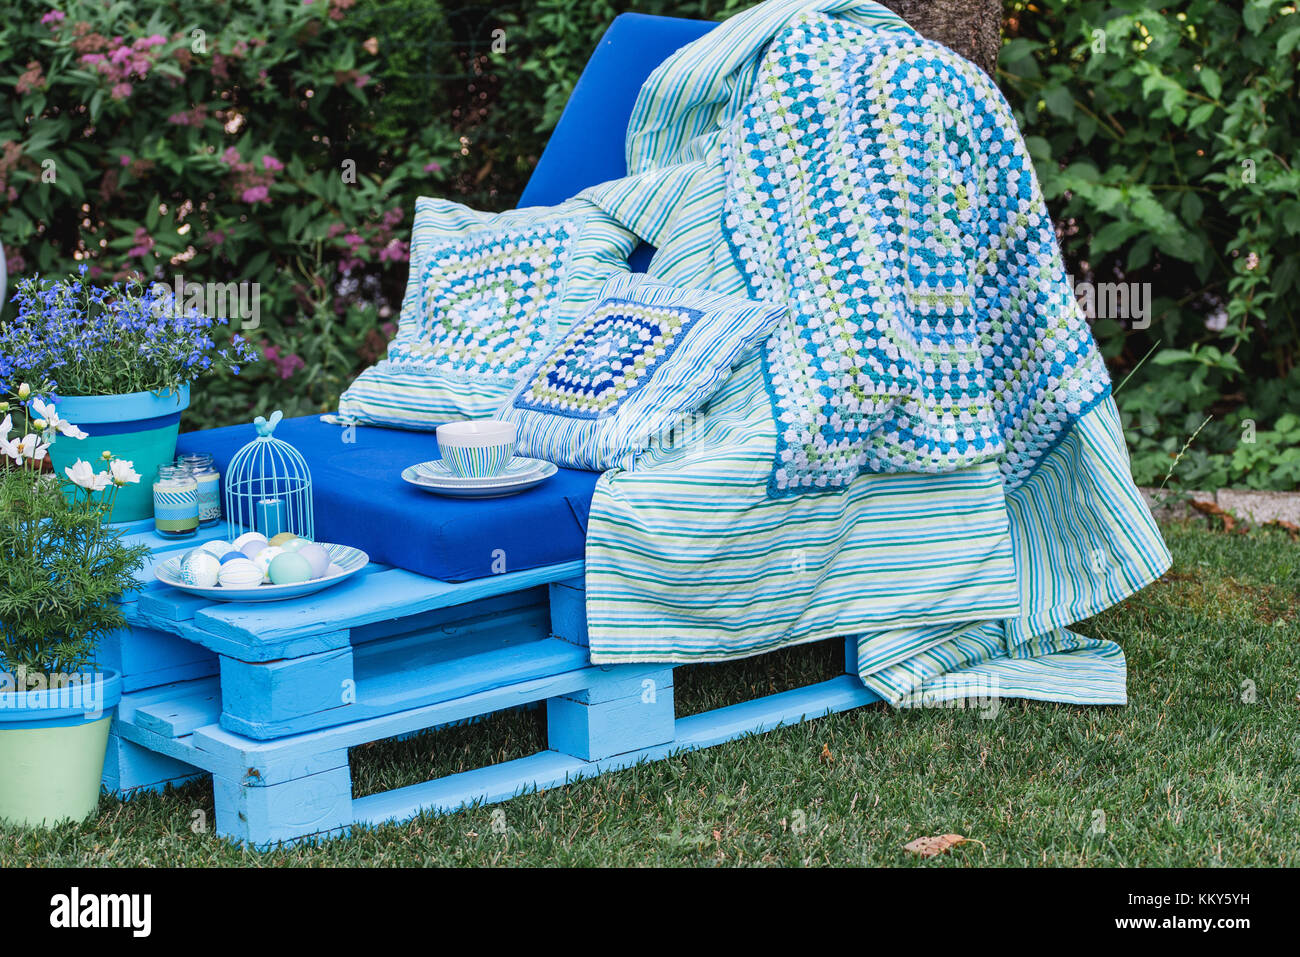 Garden, sofa made of pallets, Easter decoration, flowers, - Stock Image